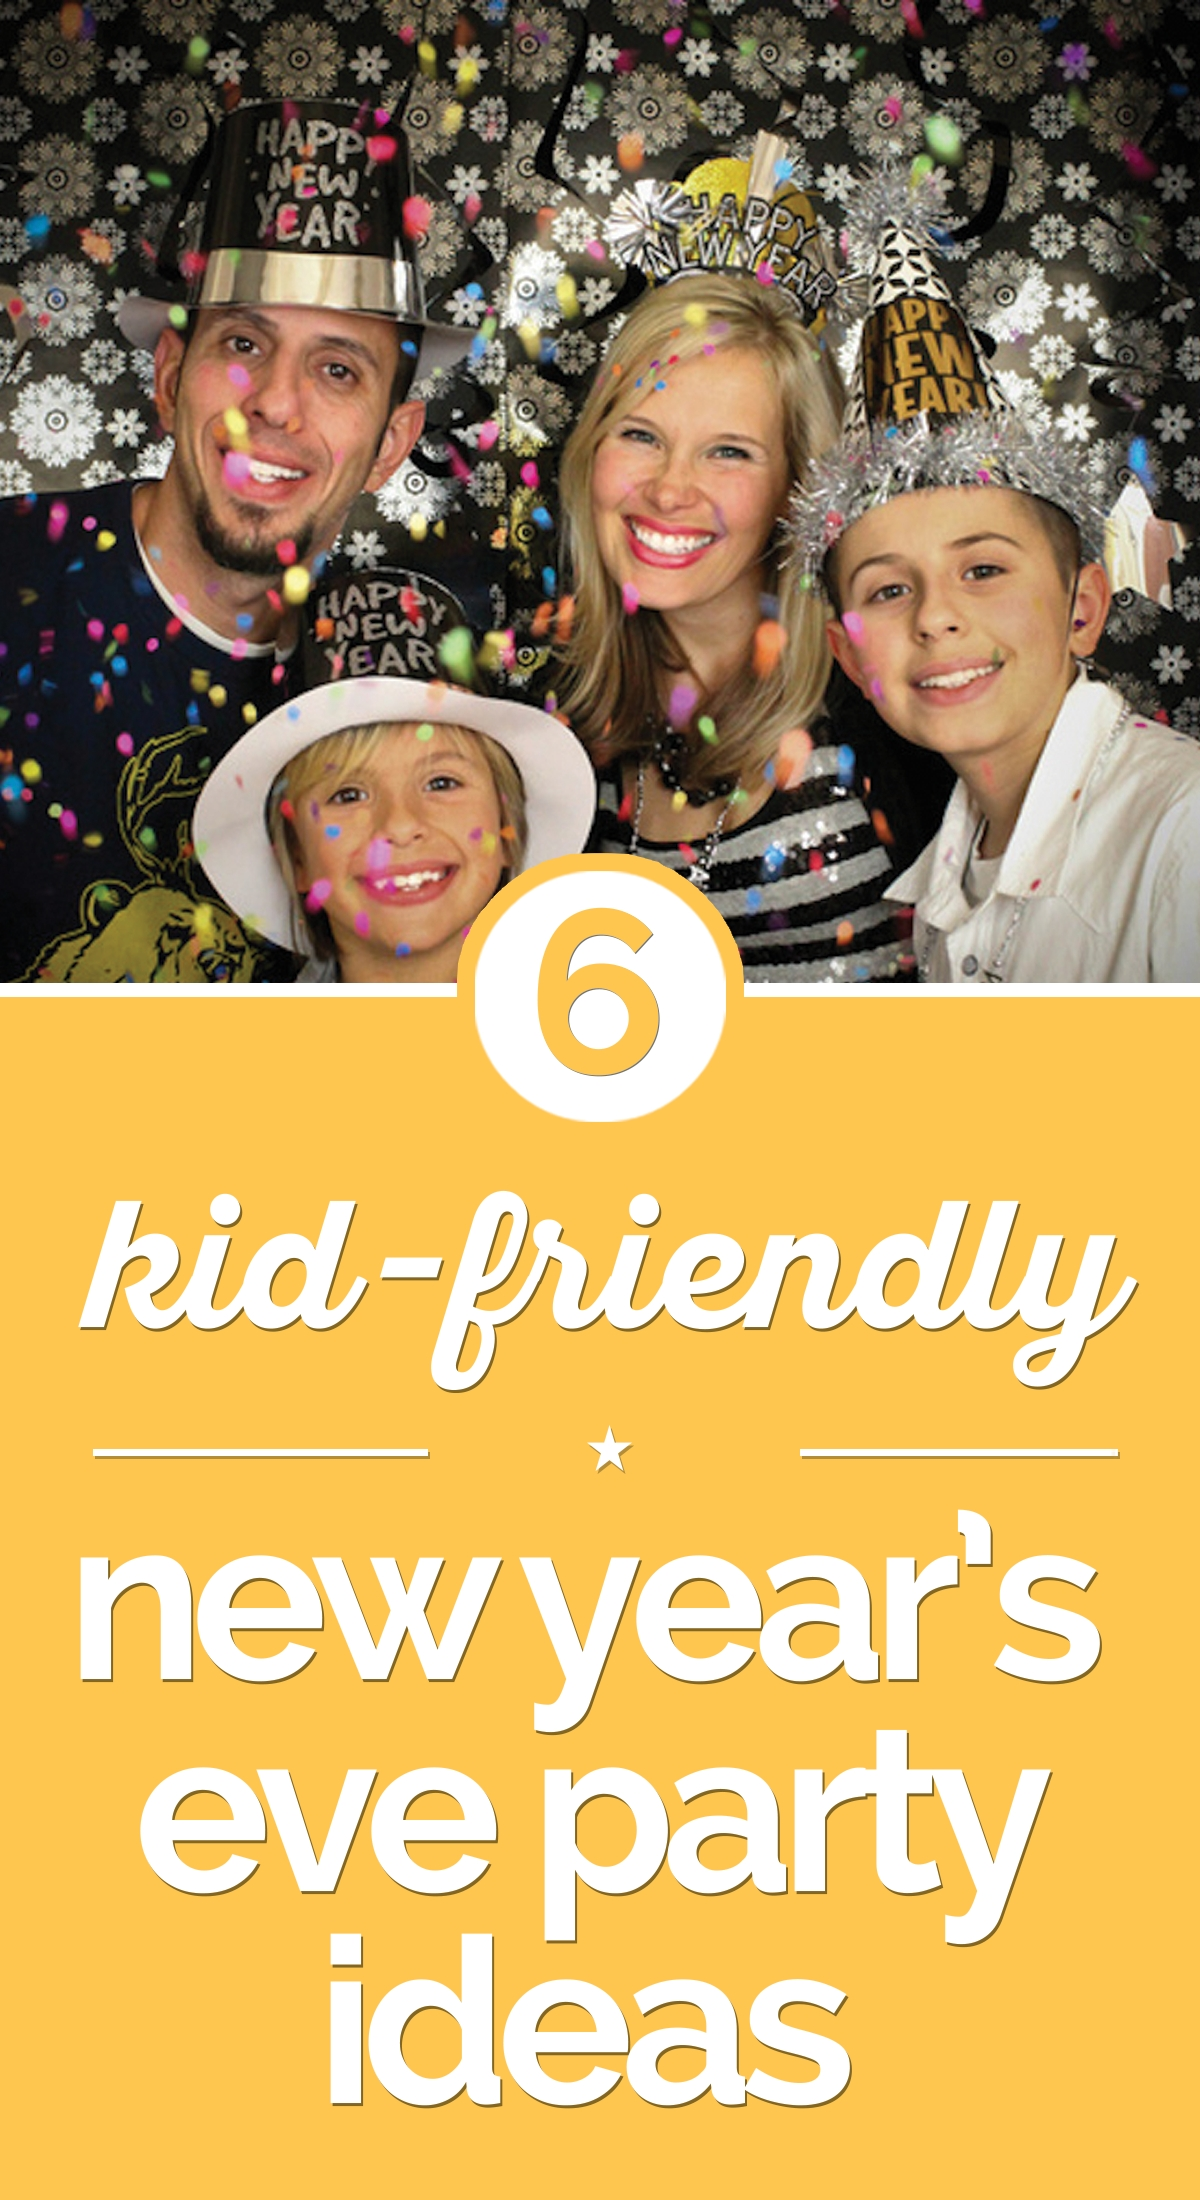 10 Unique Family Friendly New Years Eve Party Ideas 6 kid friendly new years eve party ideas thegoodstuff 4 2020